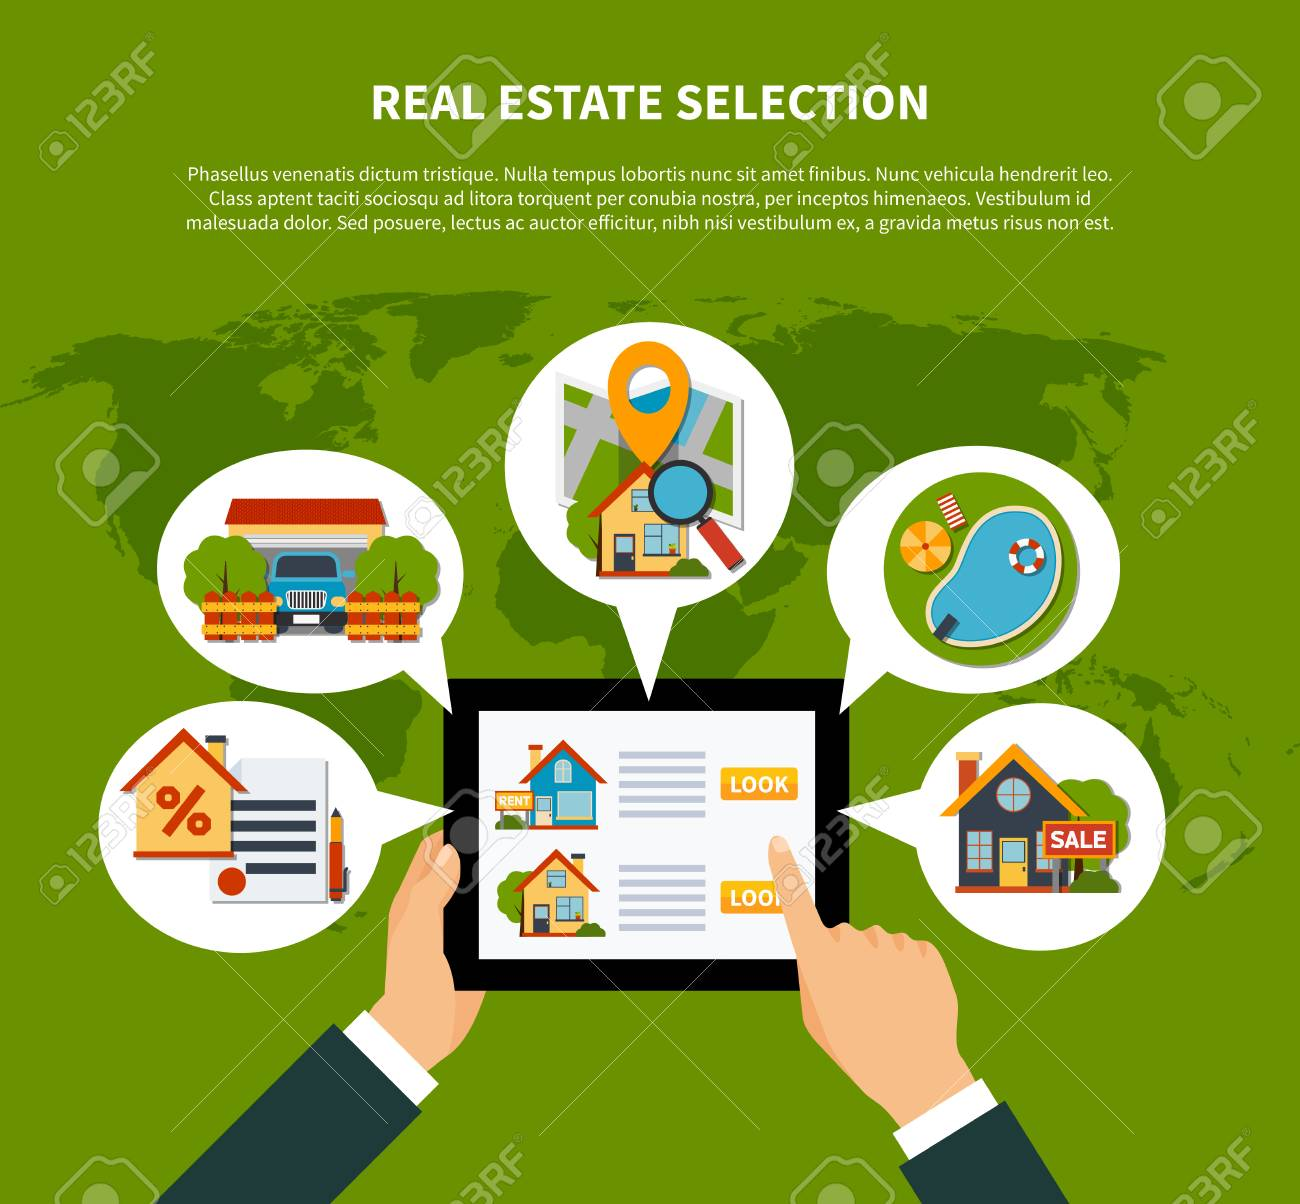 Flat design real estate online selection concept on green background flat design real estate online selection concept on green background with world map vector illustration stock gumiabroncs